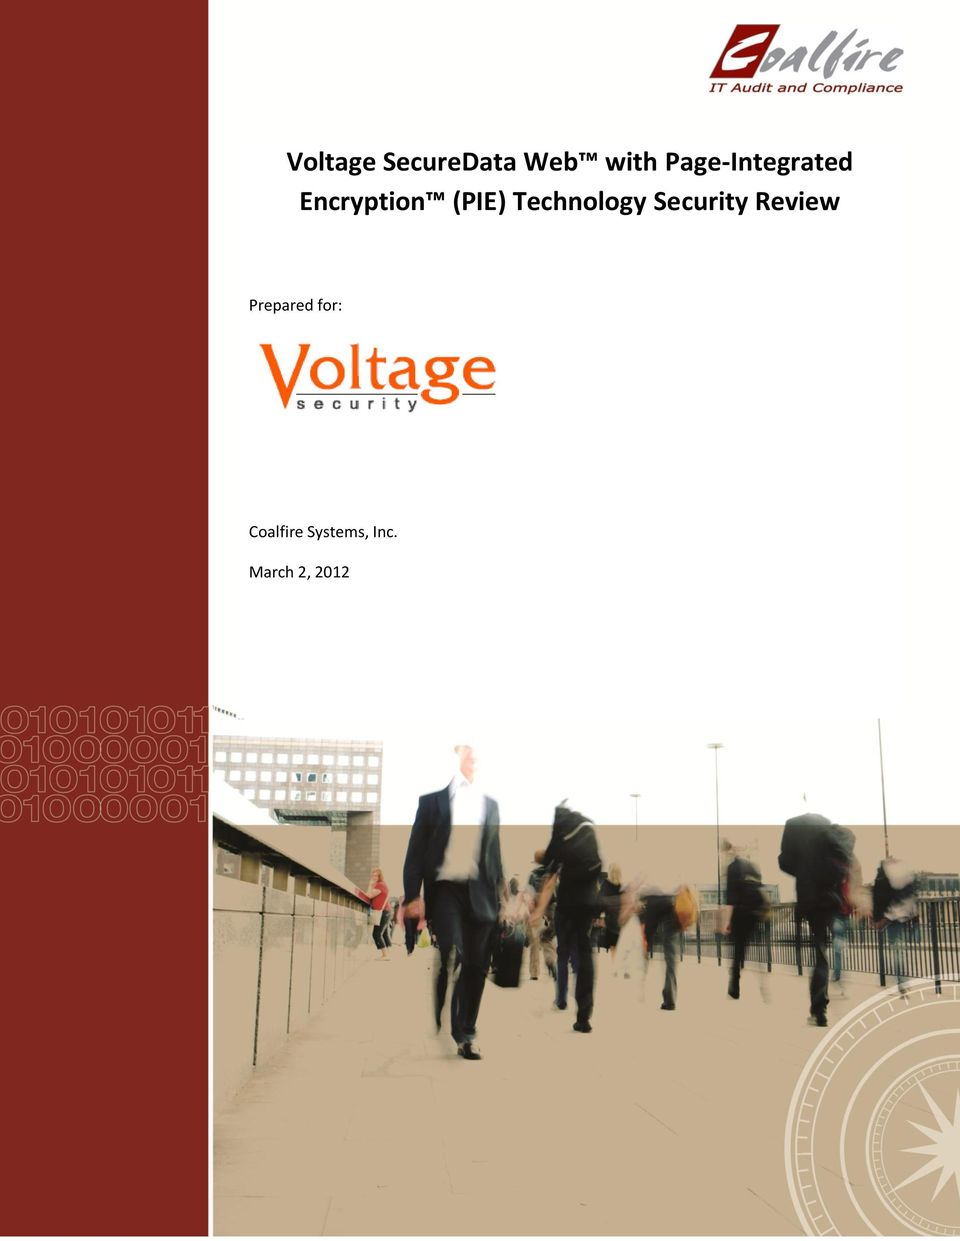 Technology Security Review